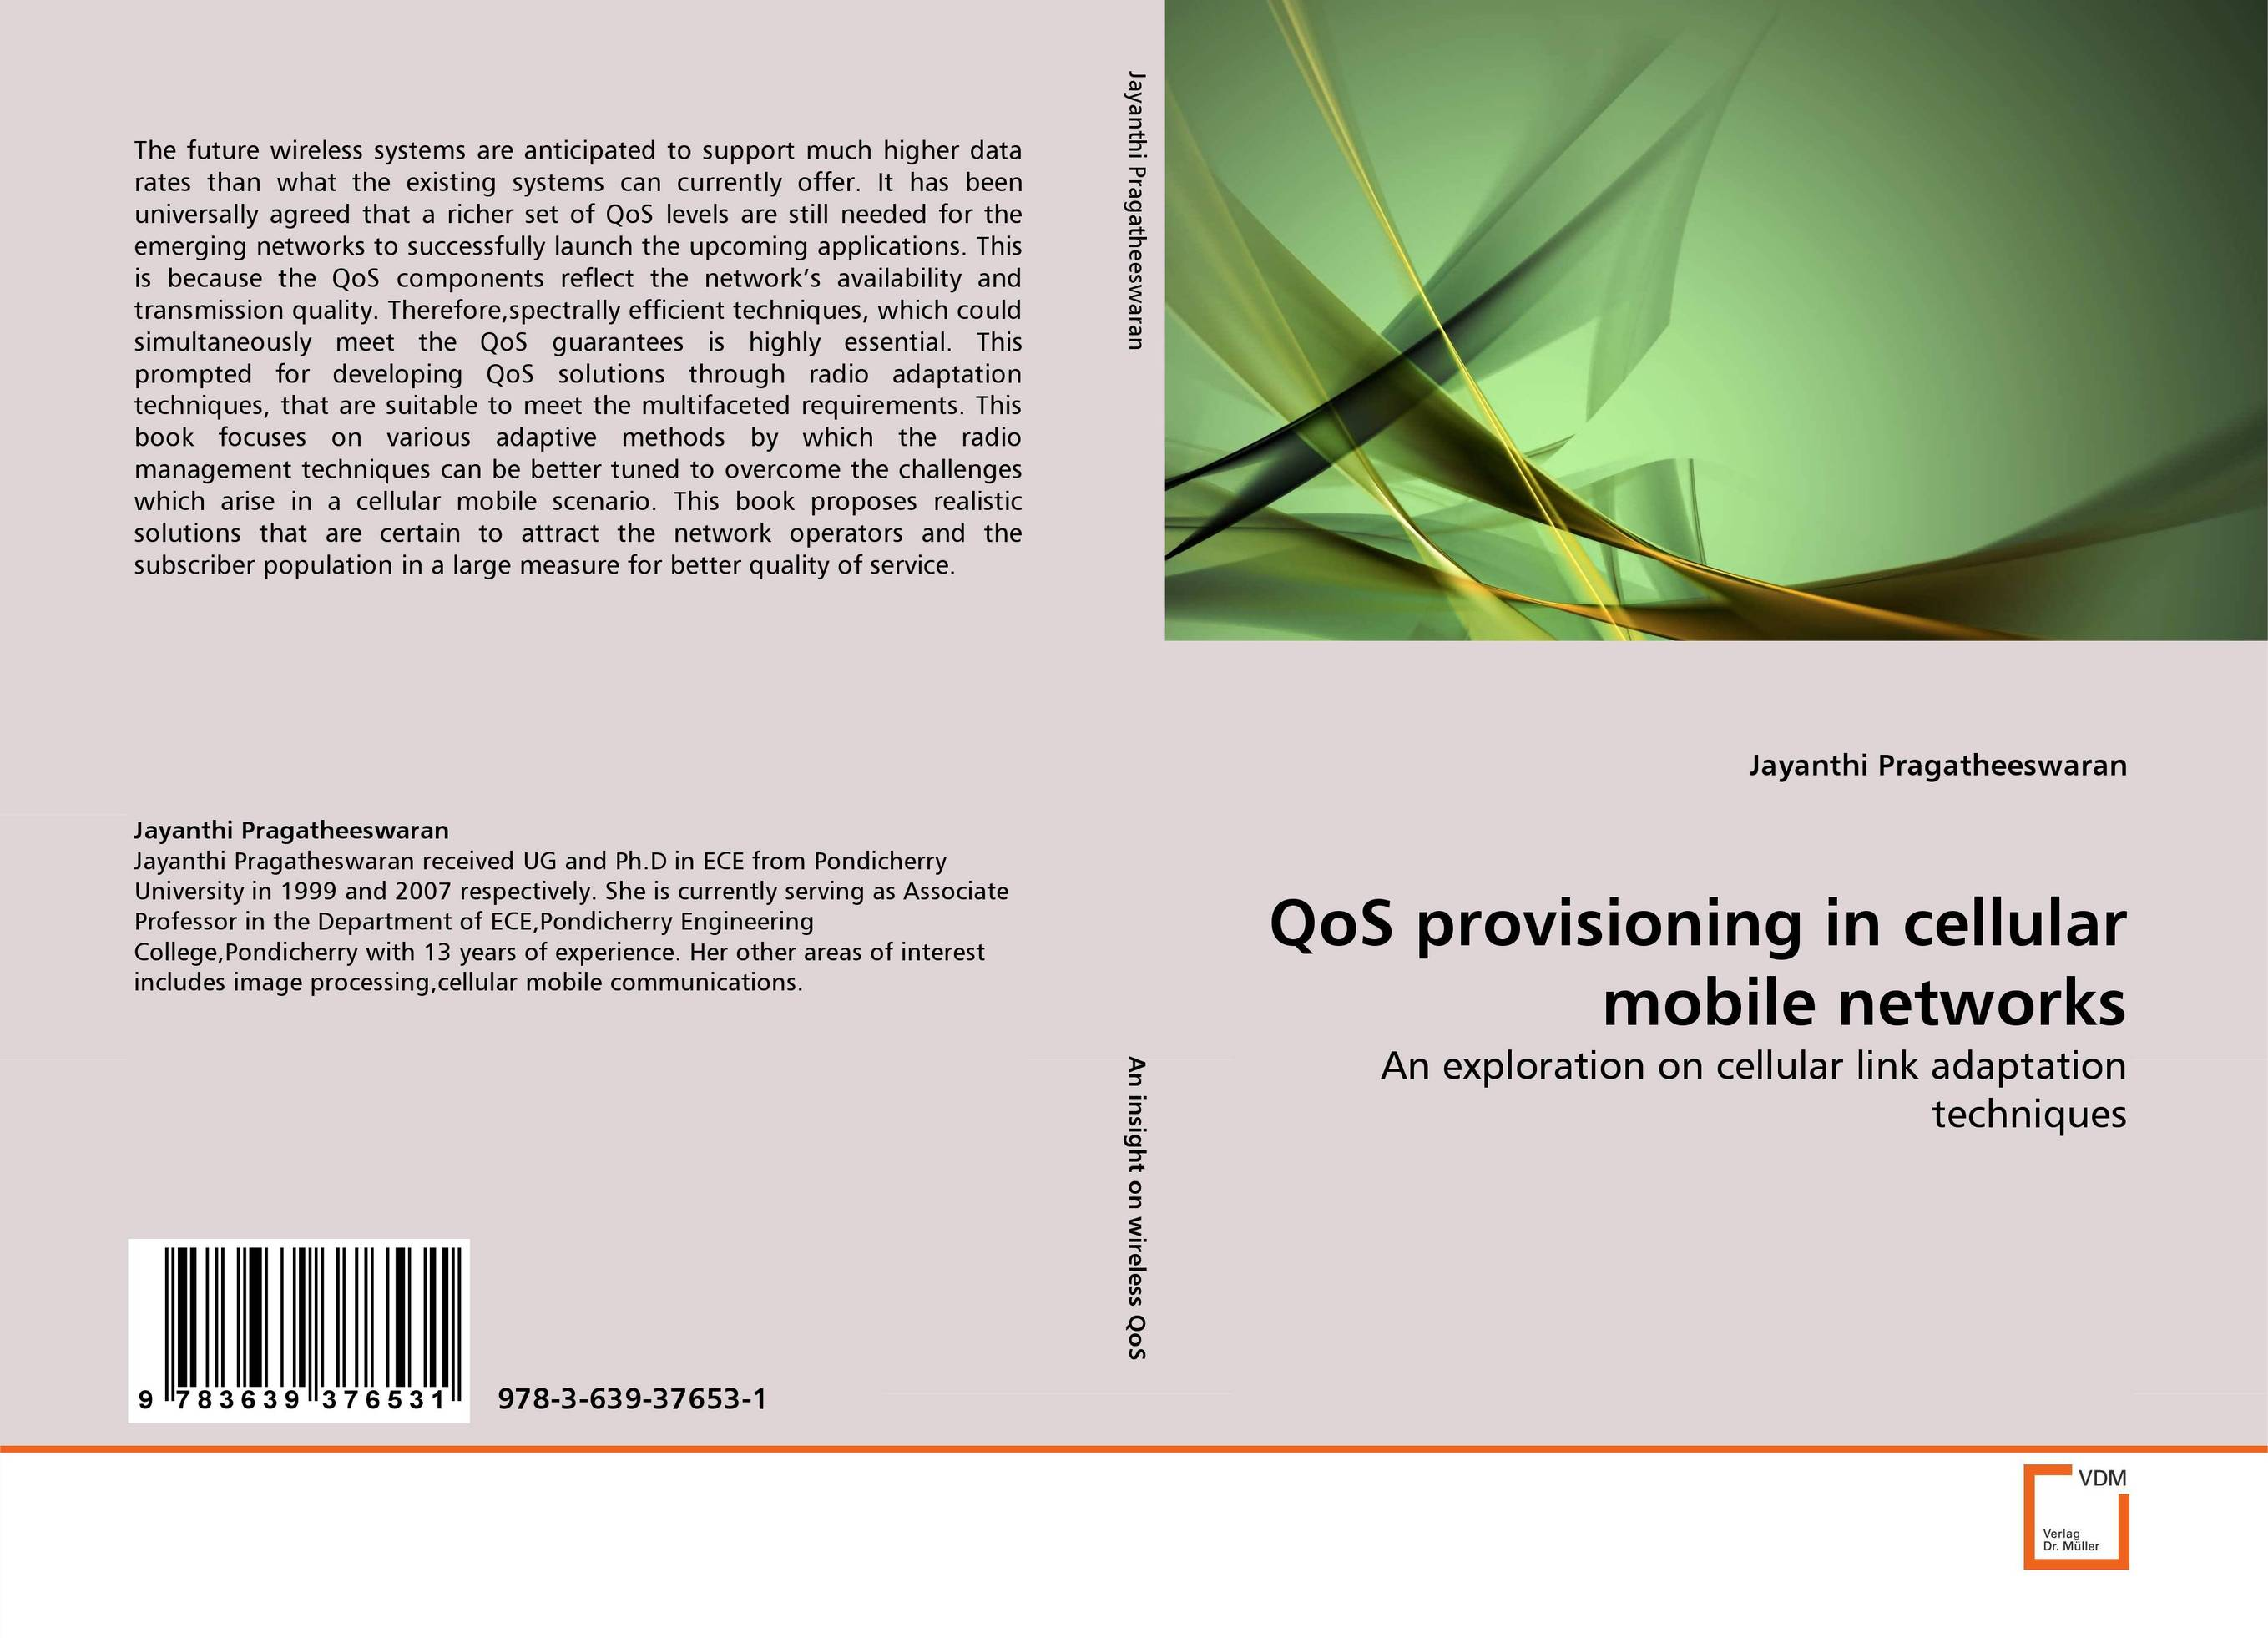 QoS provisioning in cellular mobile networks